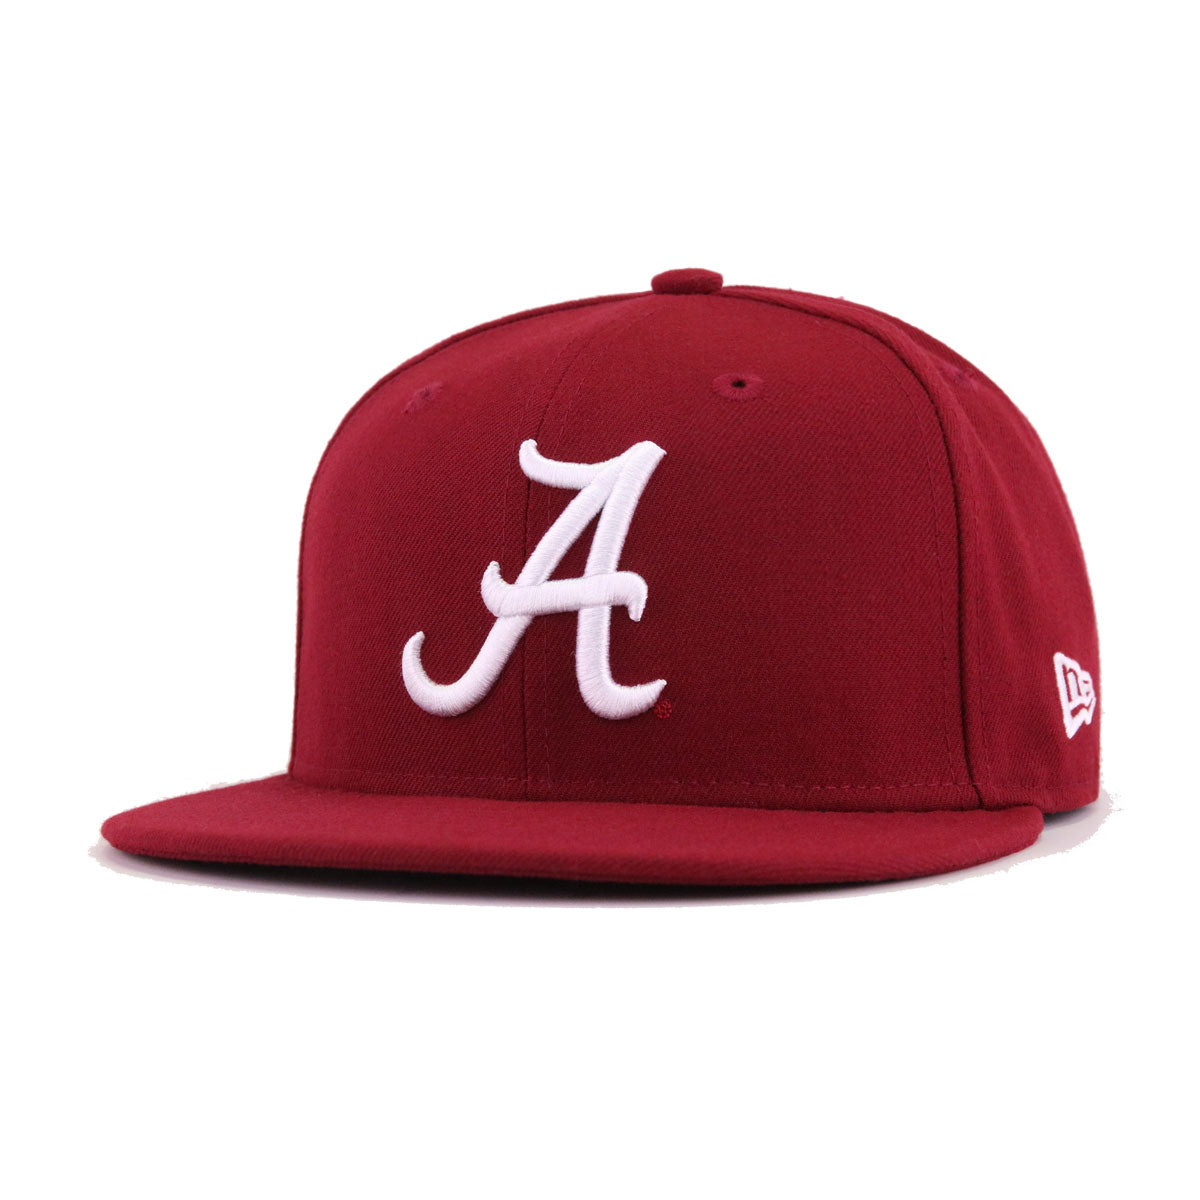 Alabama Crimson Tide Cardinal Red New Era 59Fifty Fitted 494c5df31